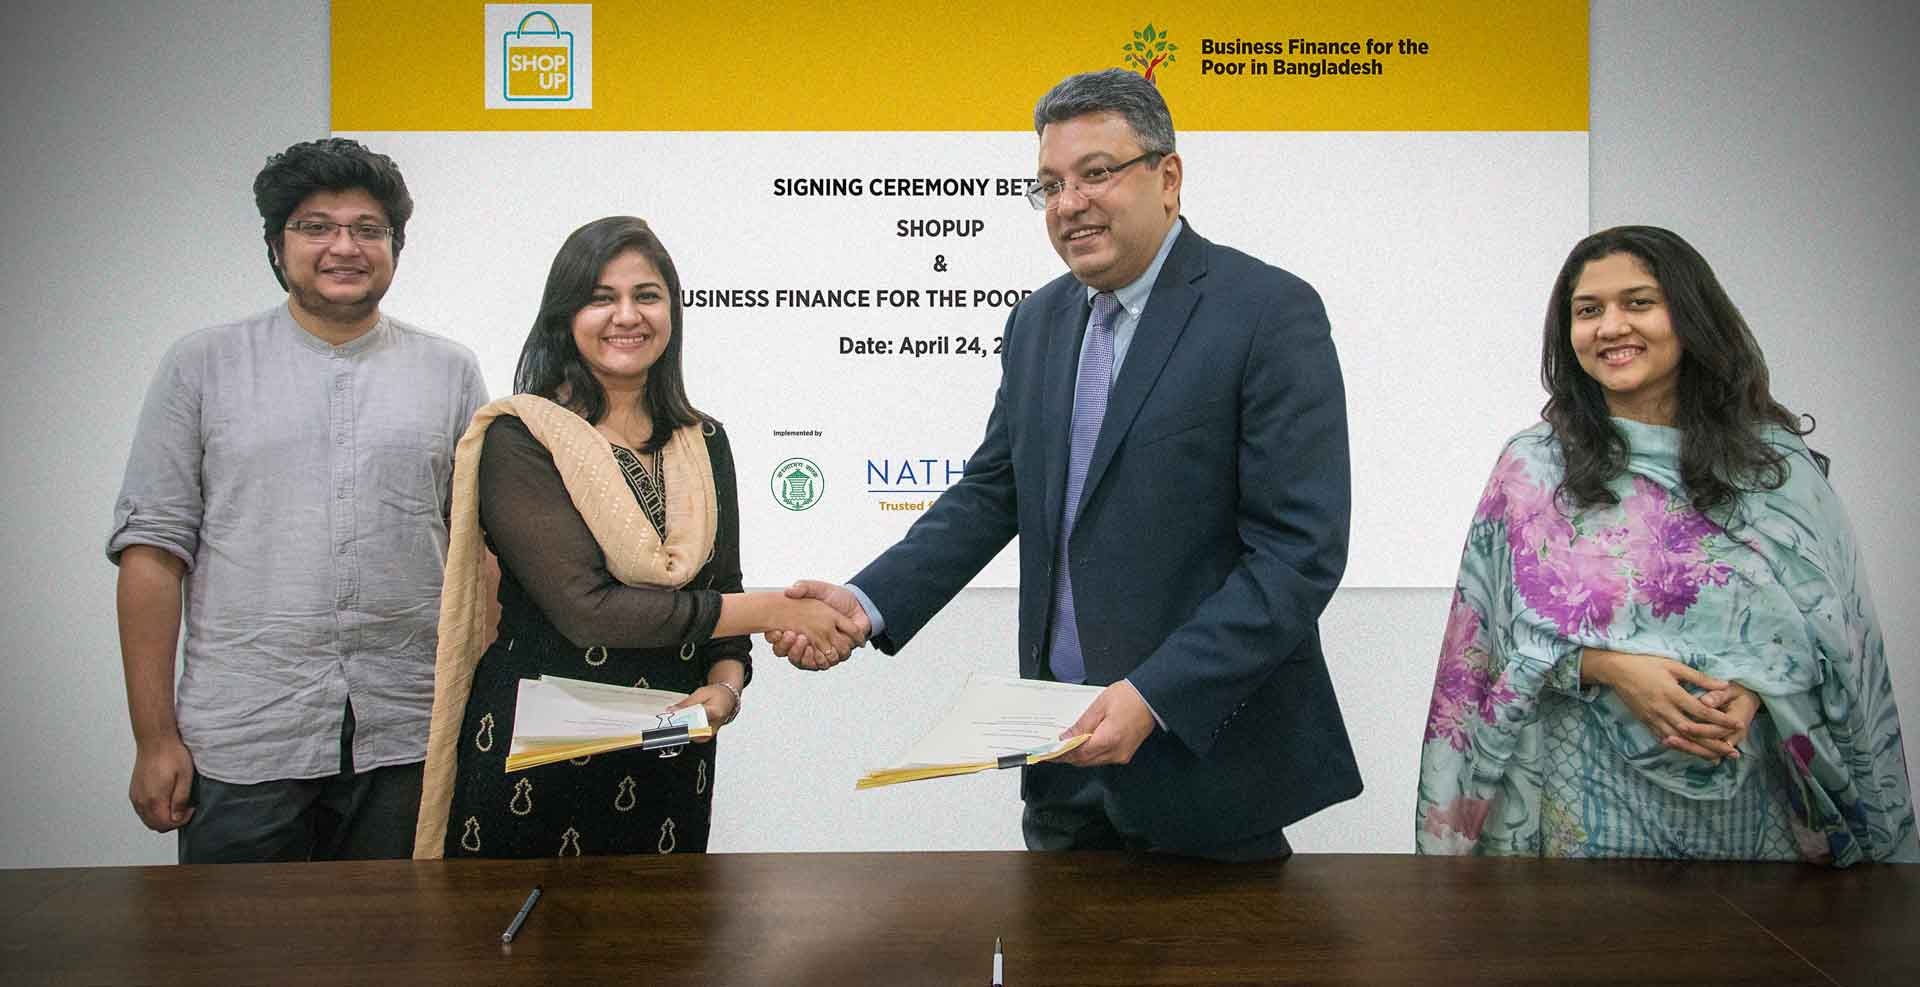 ShopUp and Business Finance for the Poor in Bangladesh representatives (Project Director Buddhika Samarasinghe and Challenge Fund Coordinator Shamira Mostafa) at a Challenge Fund signing ceremony in April 2018.